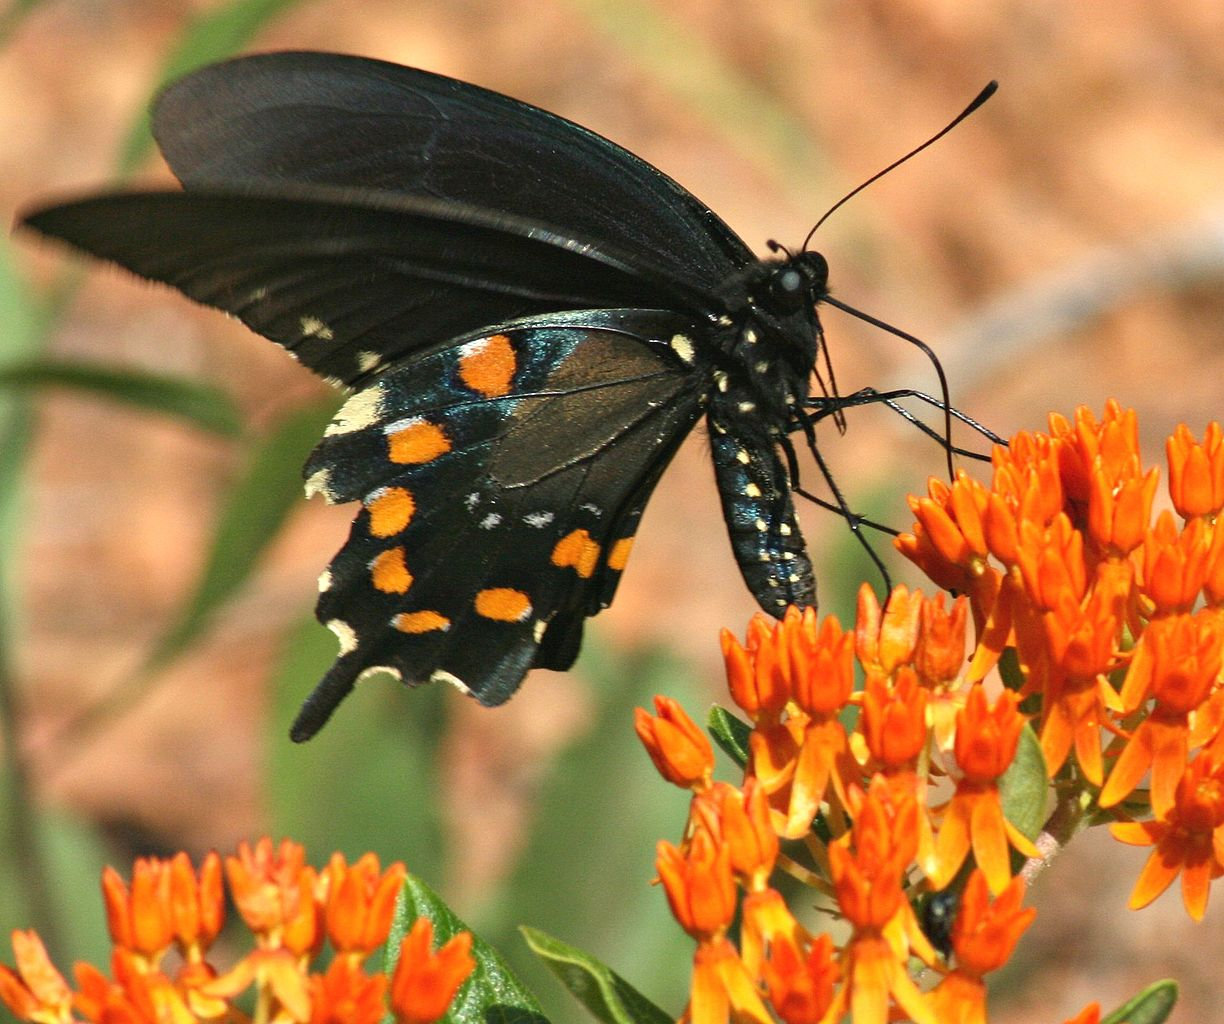 https://upload.wikimedia.org/wikipedia/commons/thumb/c/c9/Pipevine_Swallowtail_on_Butterfly_Weed_%282552294158%29.jpg/1224px-Pipevine_Swallowtail_on_Butterfly_Weed_%282552294158%29.jpg